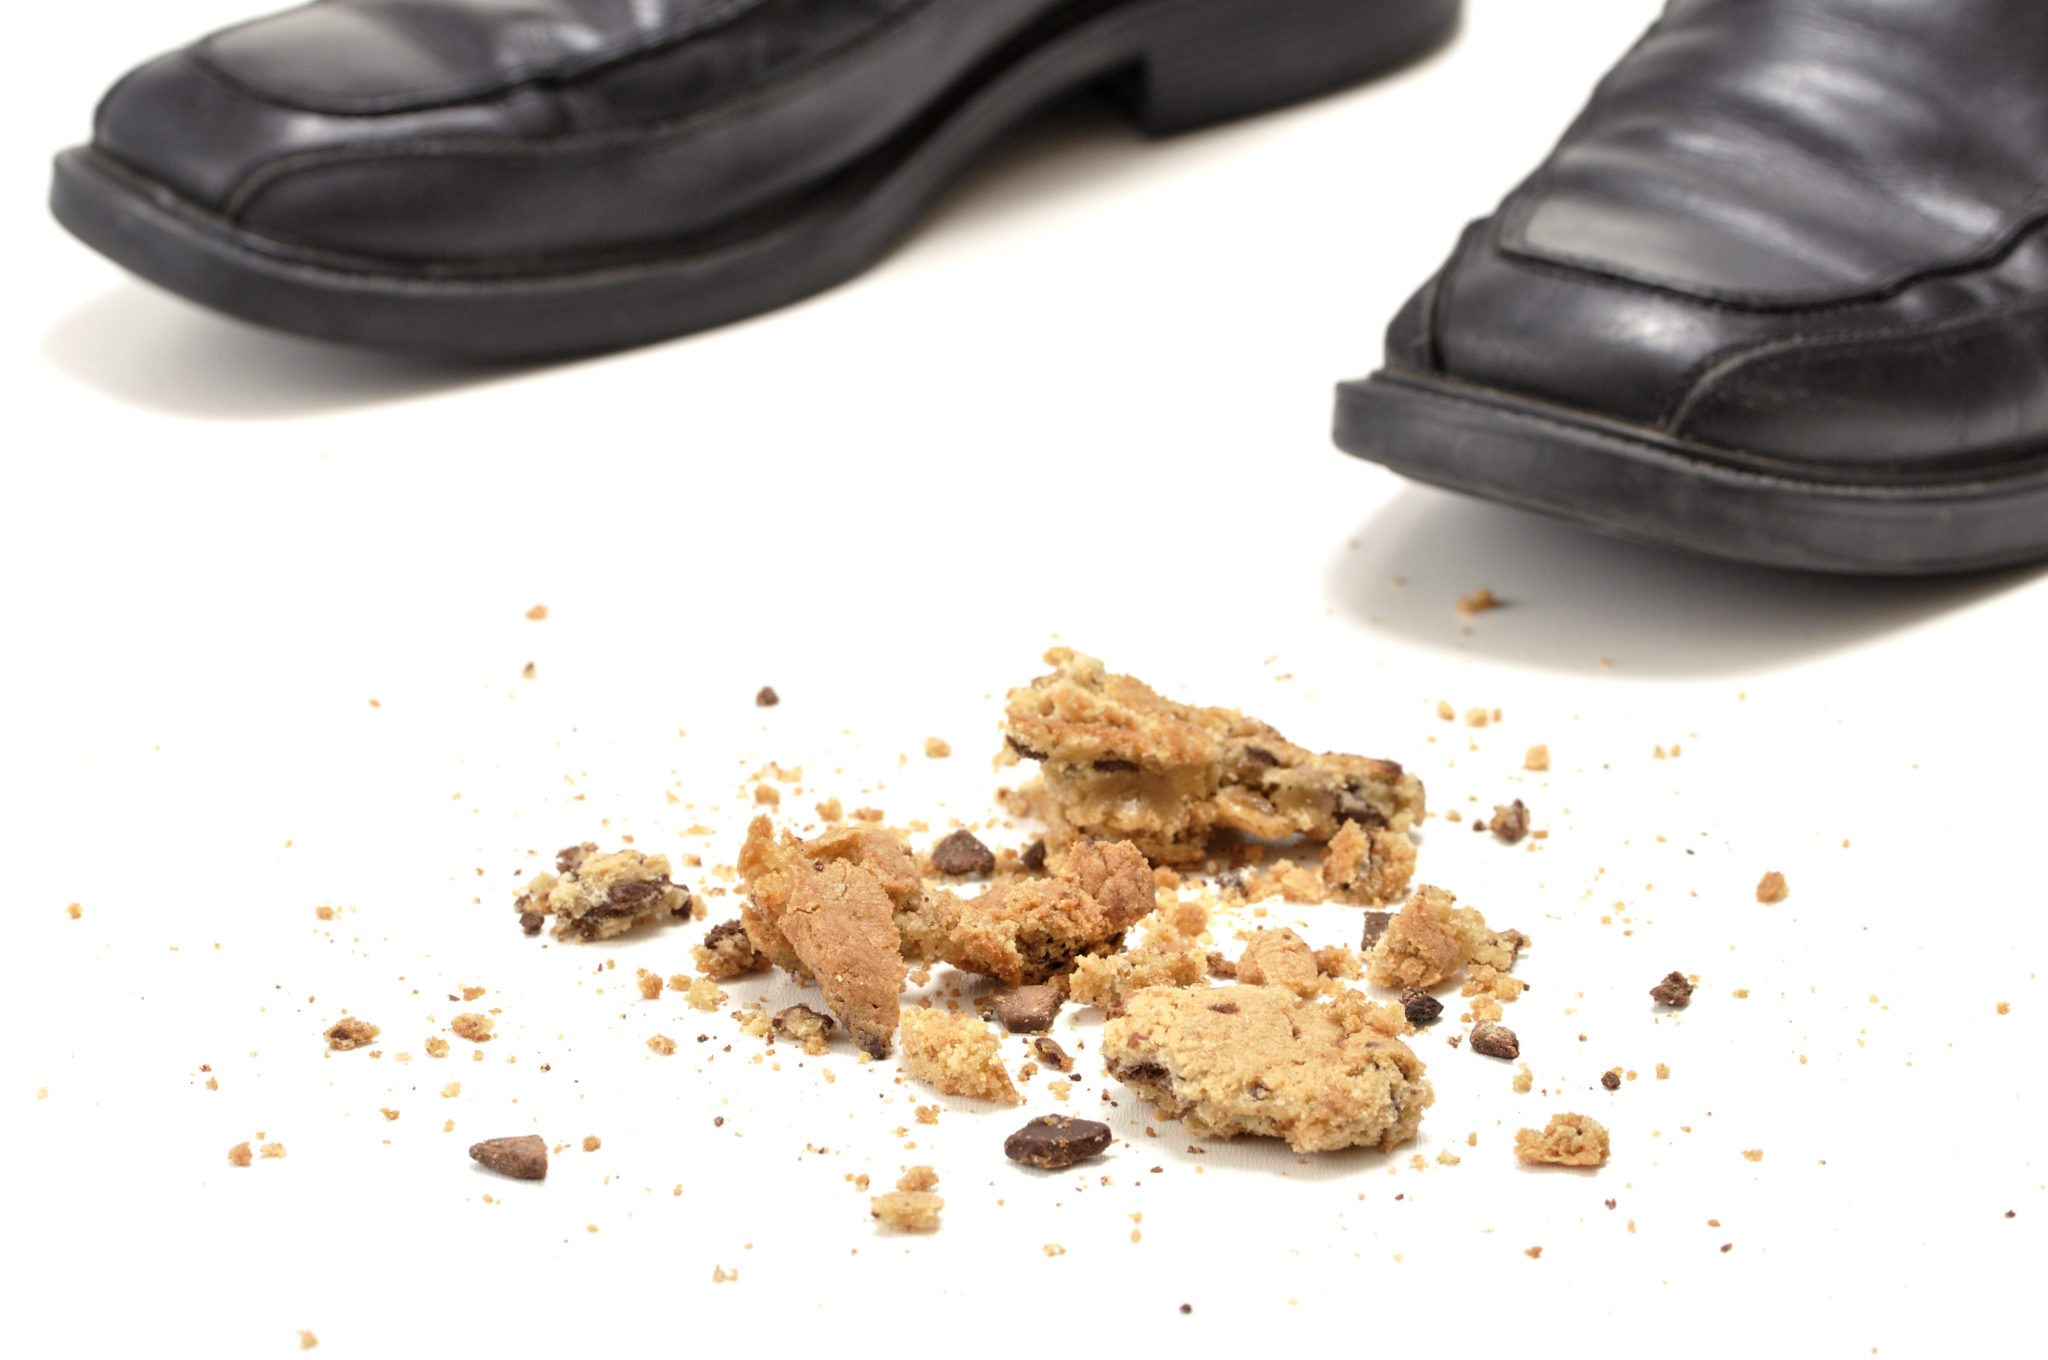 Dropped cookie on the floor